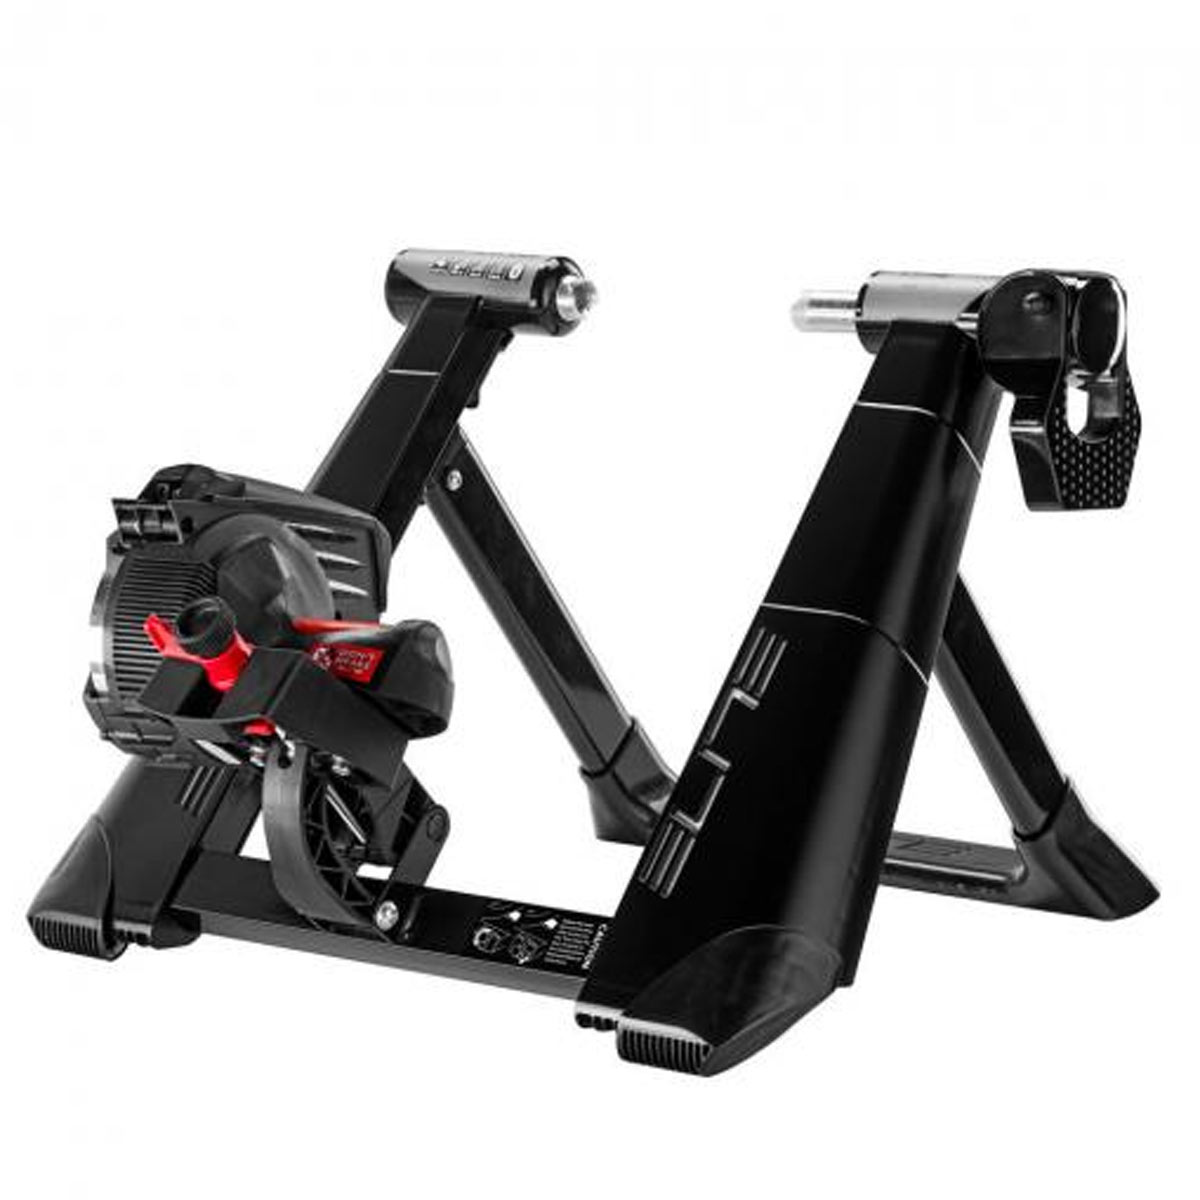 Rolo De Treino Interativo Elite Novo Smart Bike Mtb Speed